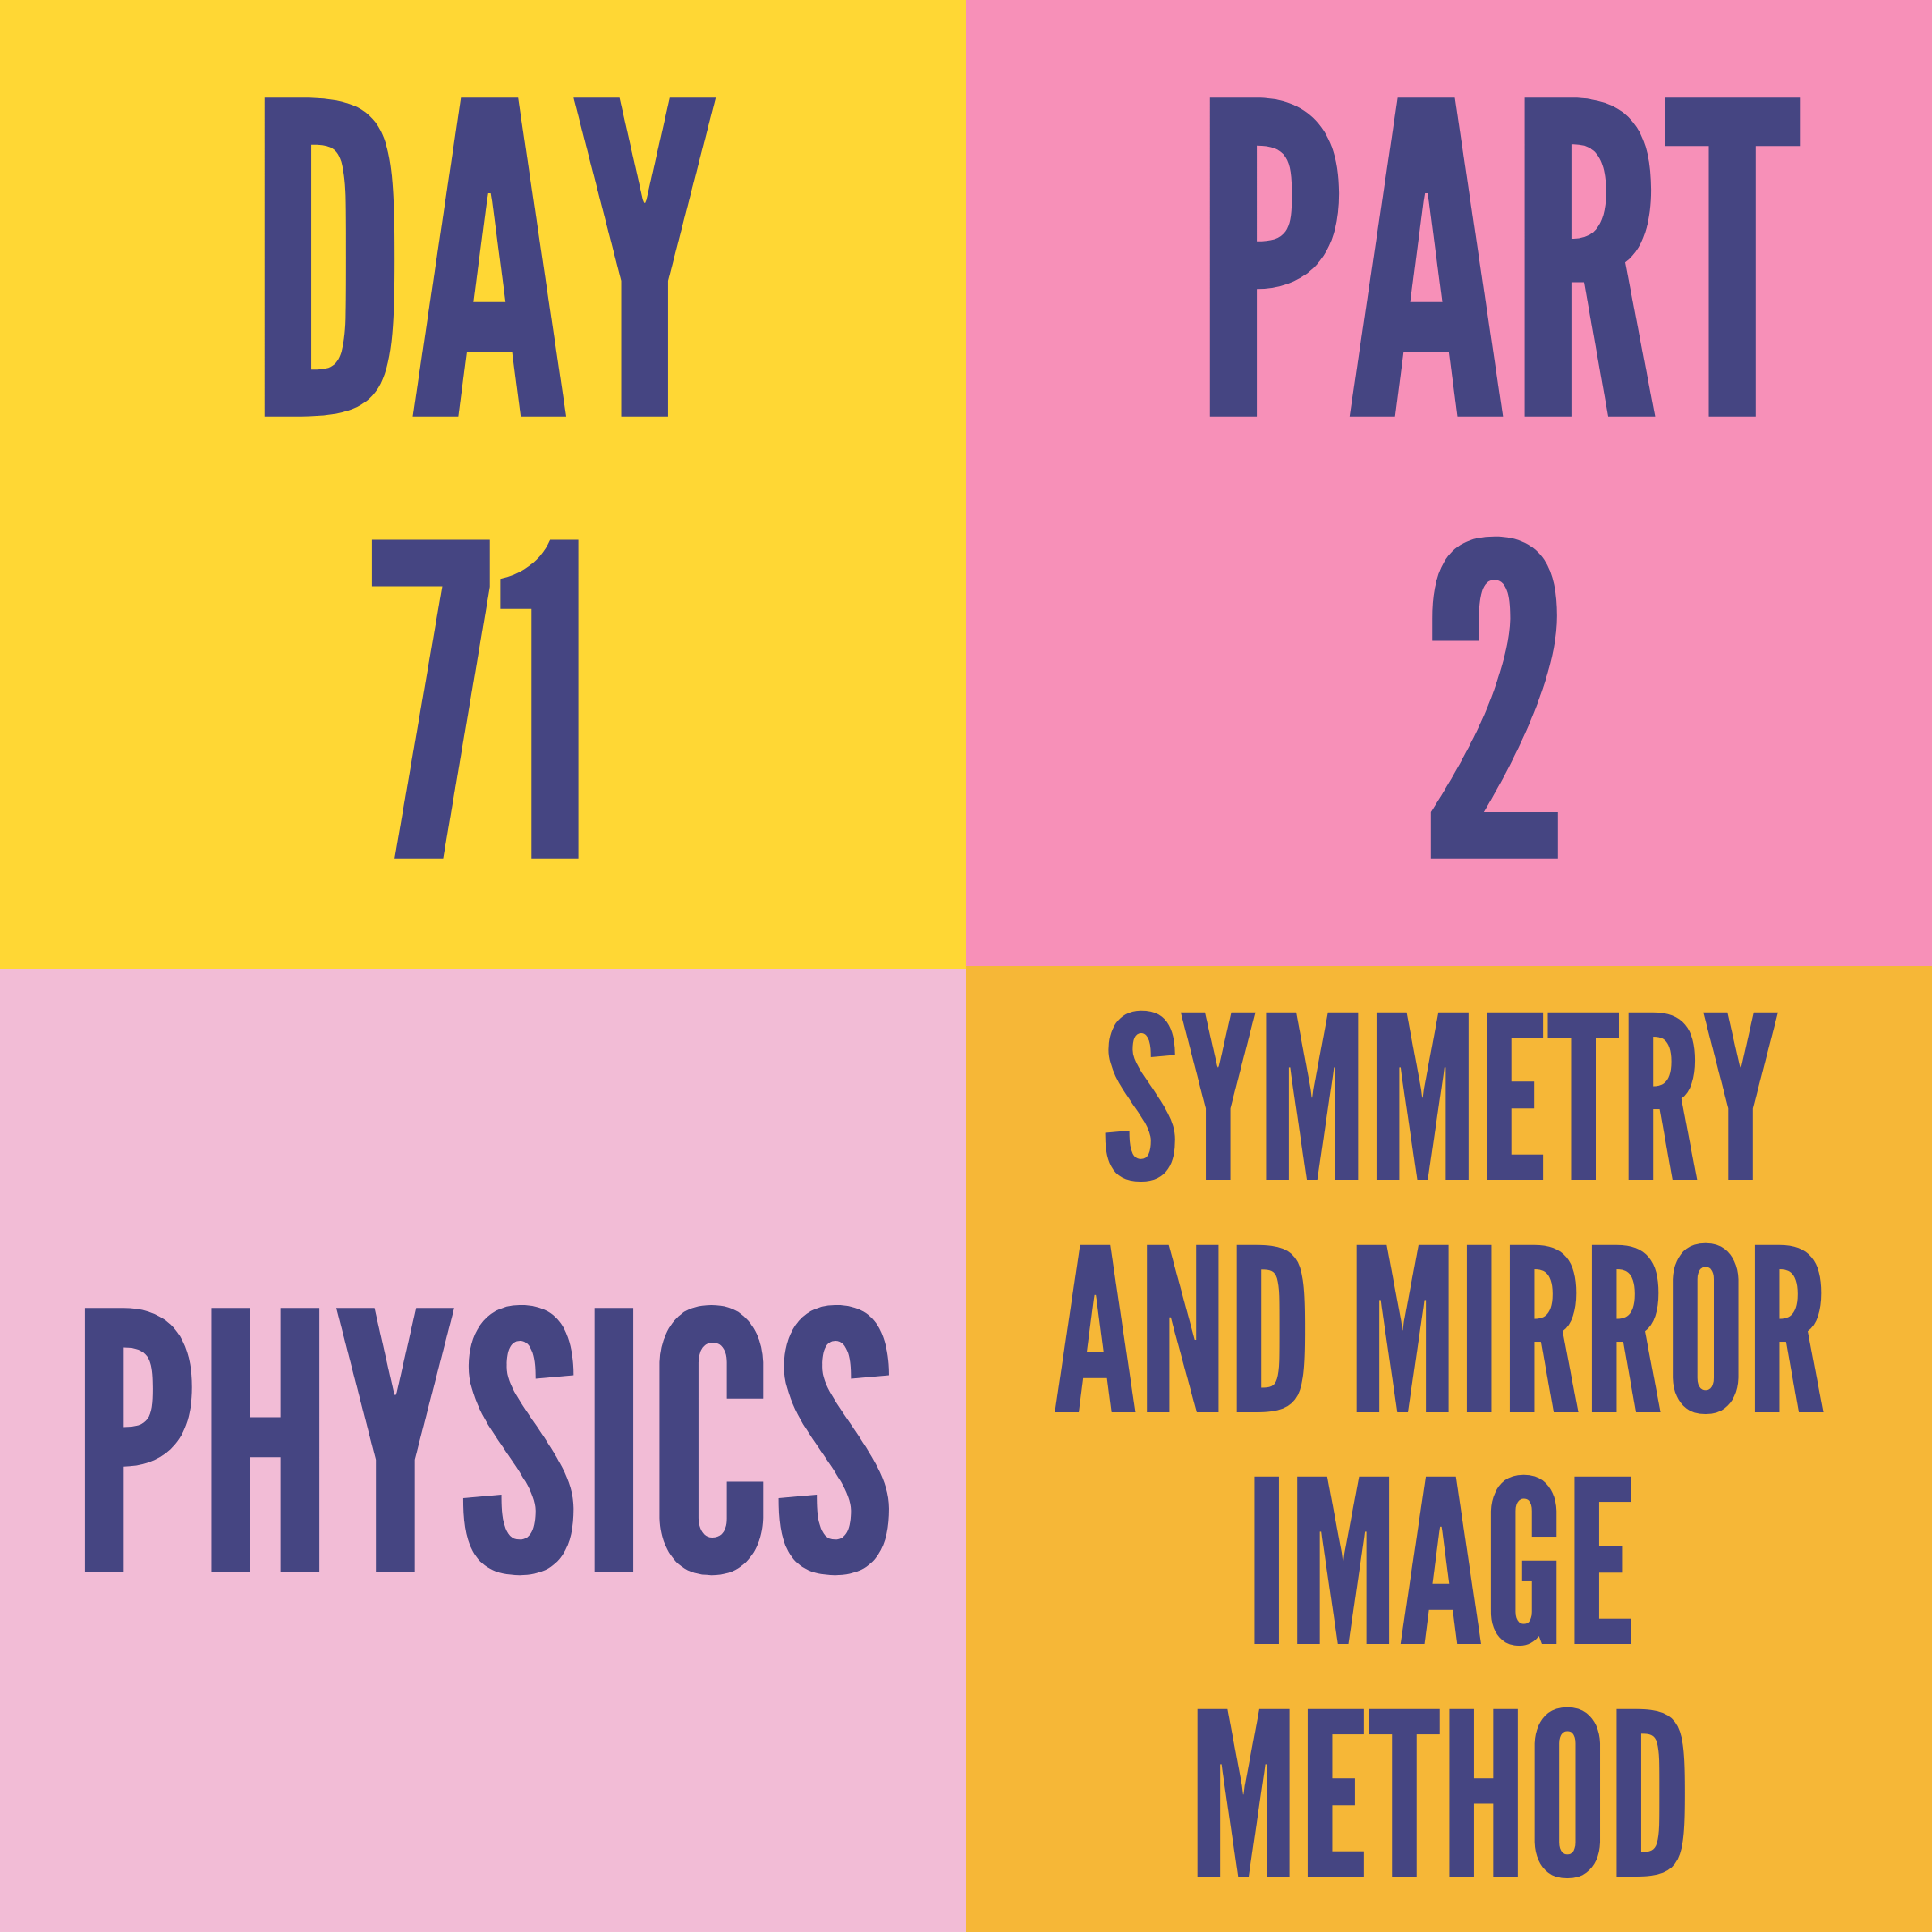 DAY-71 PART-2  SYMMETRY AND MIRROR IMAGE METHOD